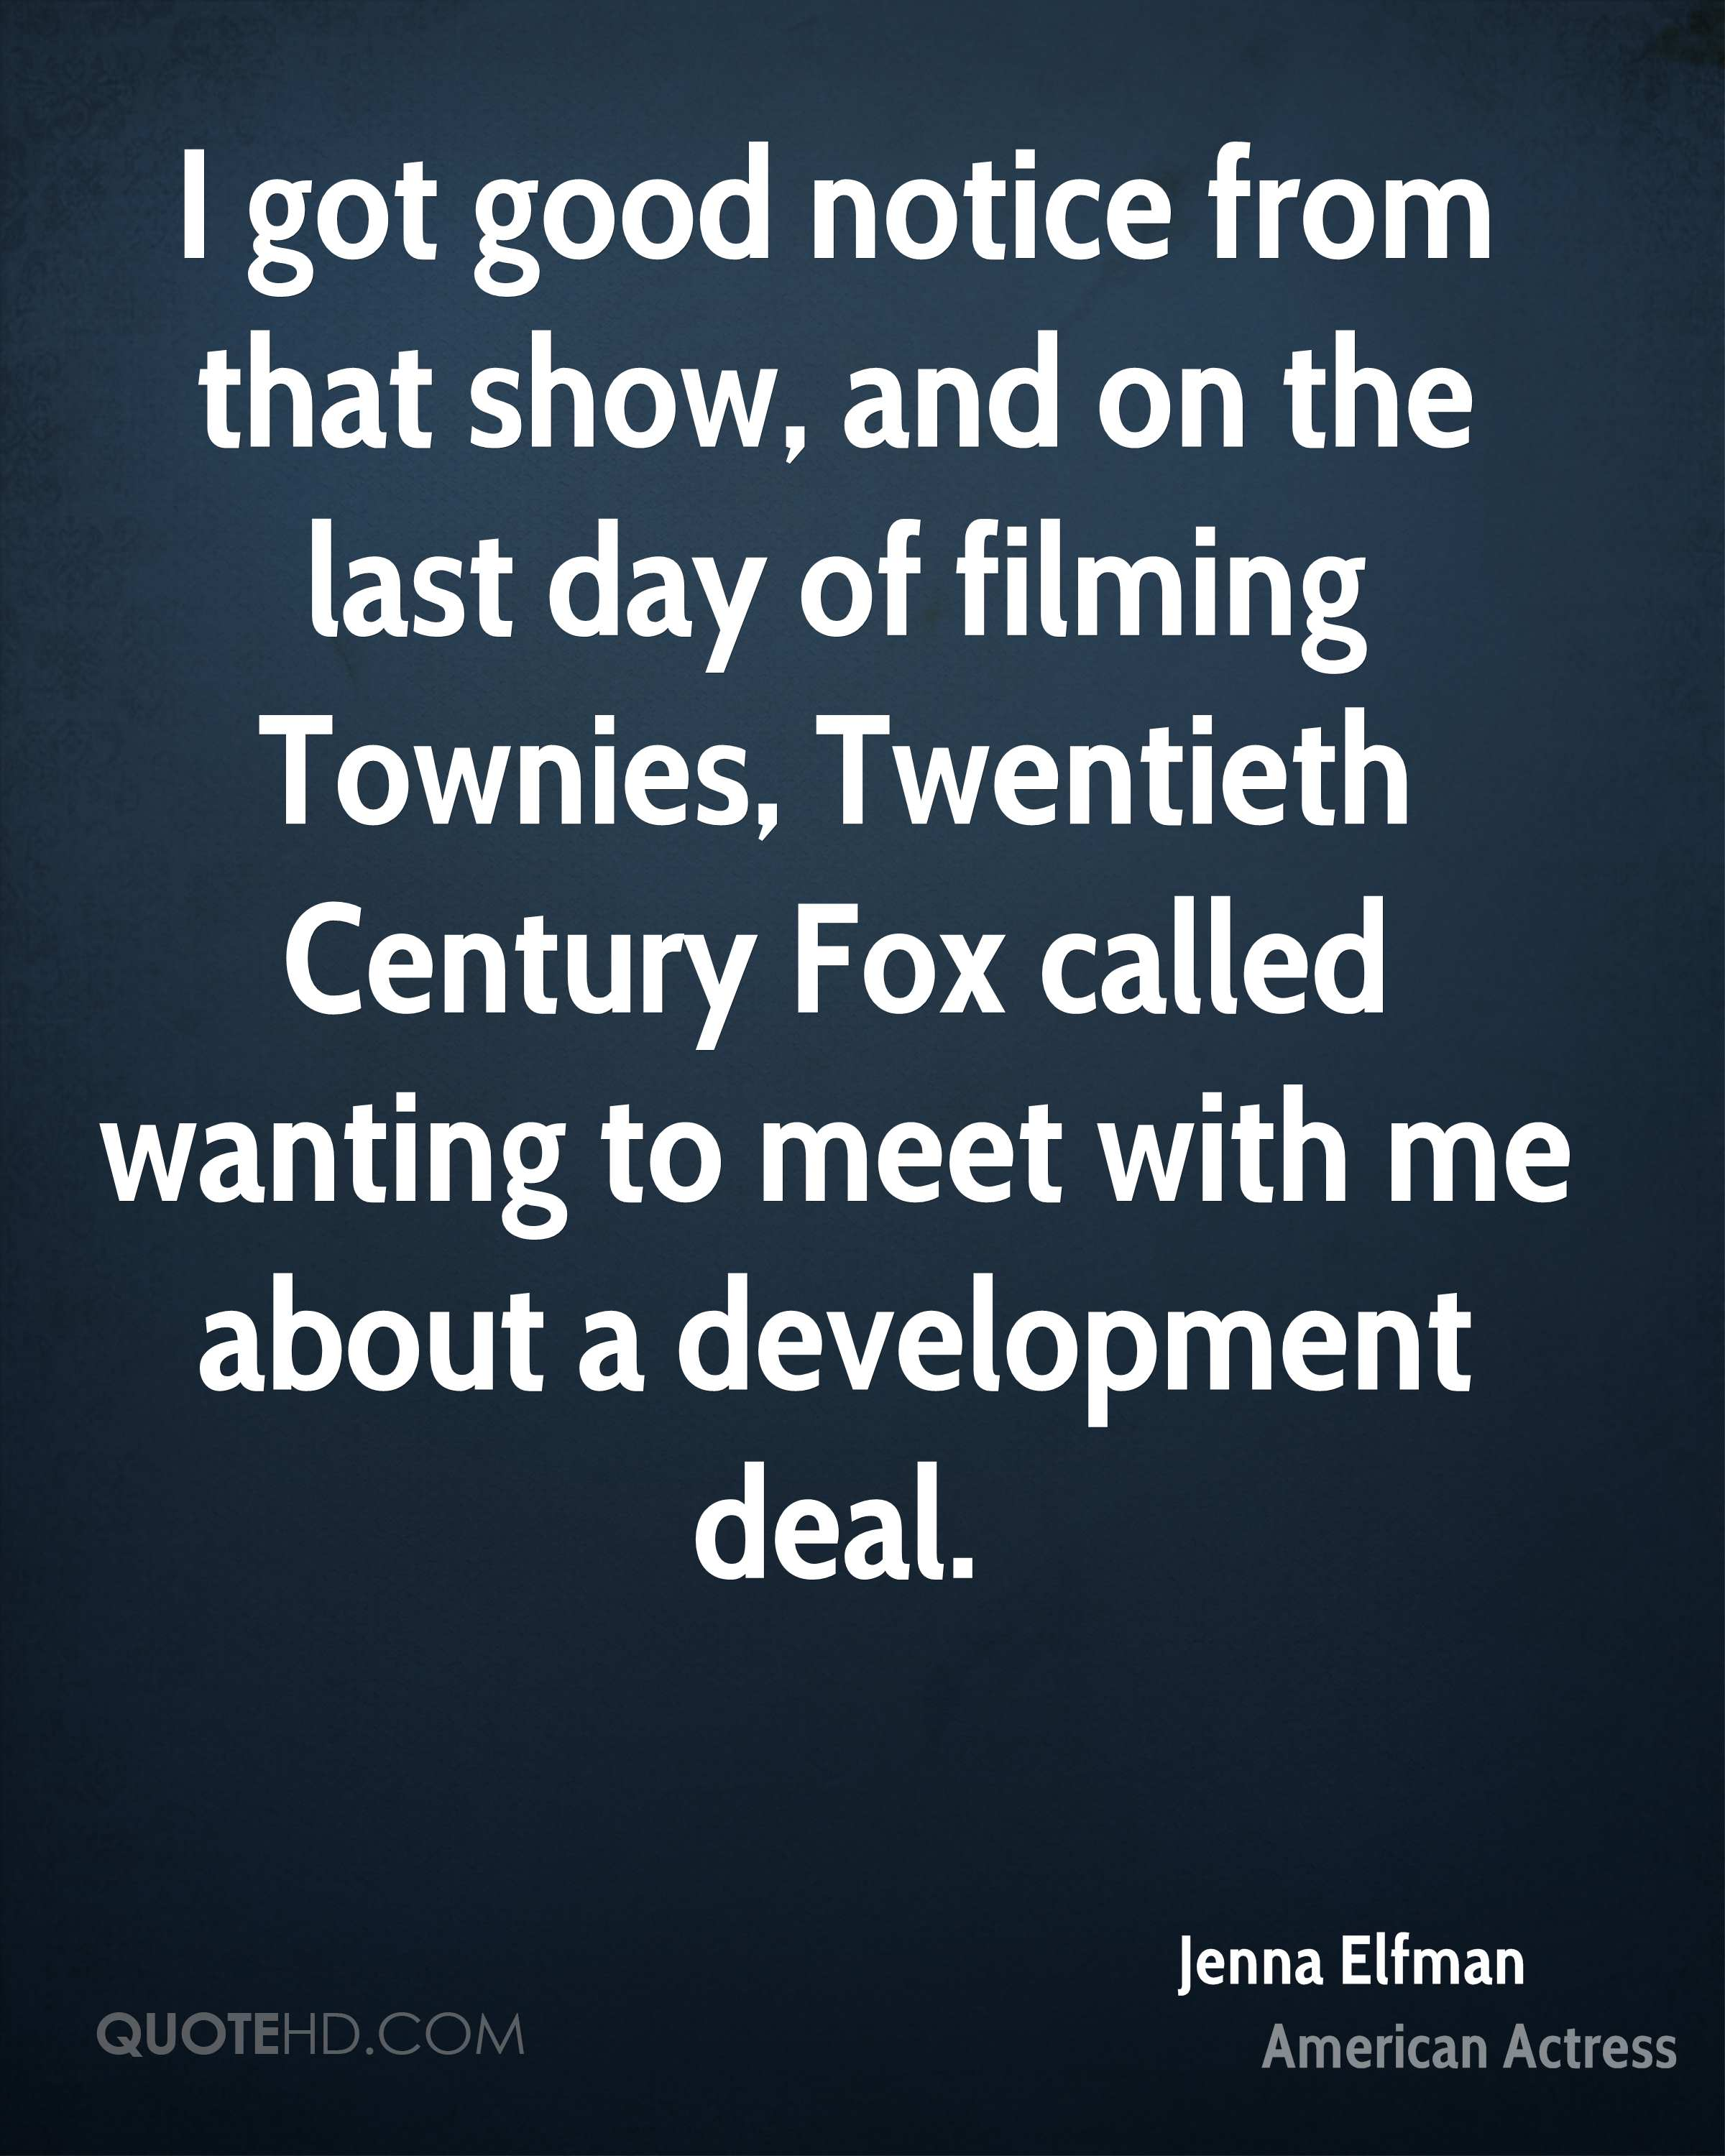 I got good notice from that show, and on the last day of filming Townies, Twentieth Century Fox called wanting to meet with me about a development deal.